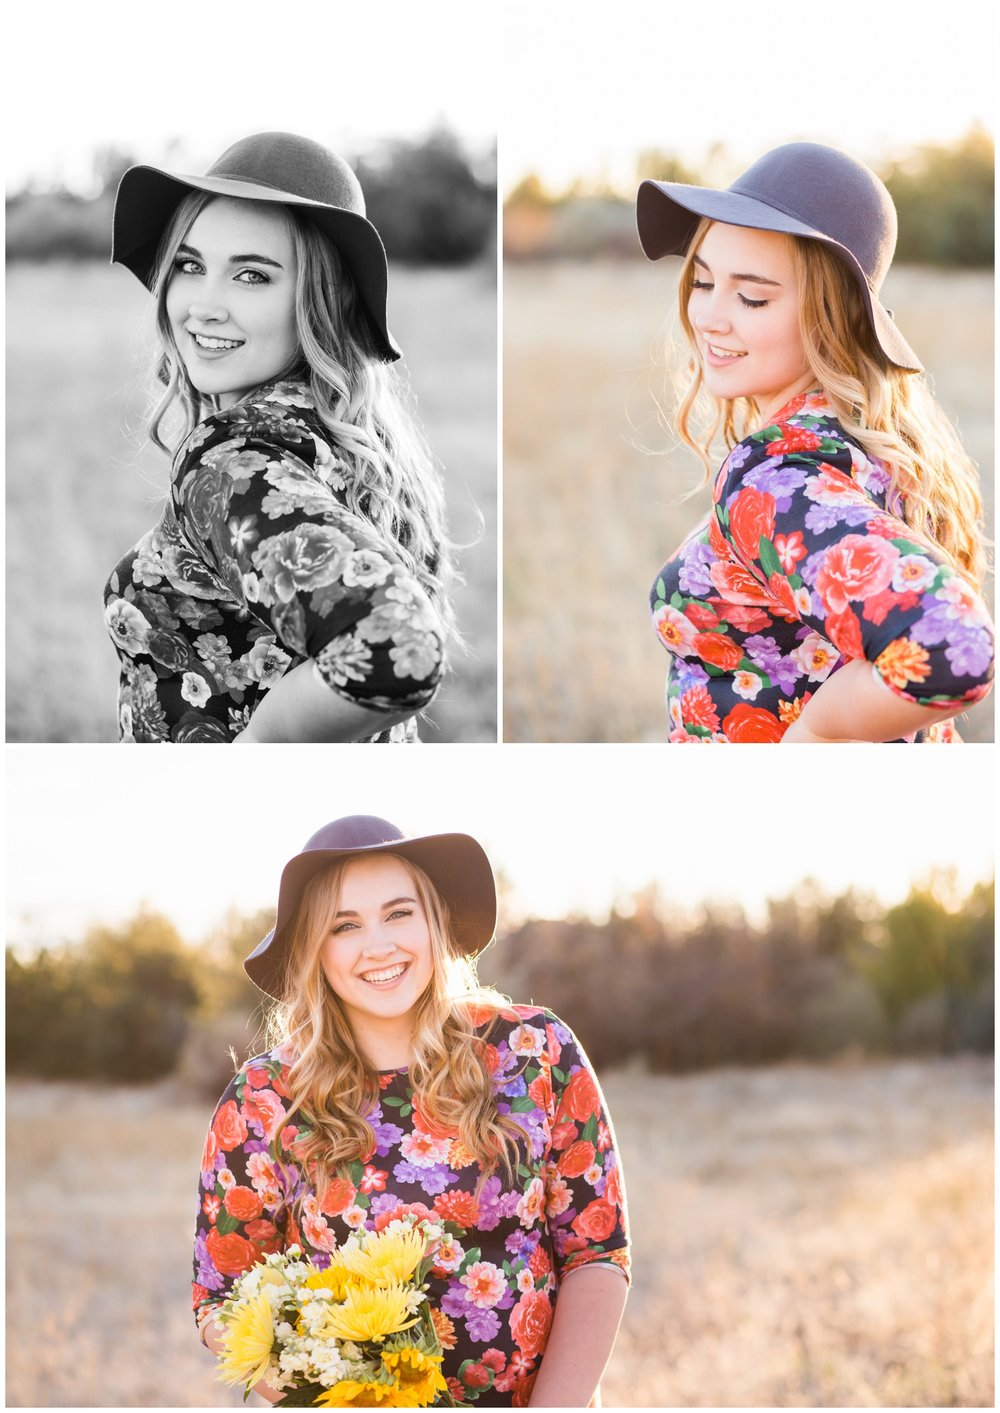 Late Summer senior portraits in floral dress and floppy hat